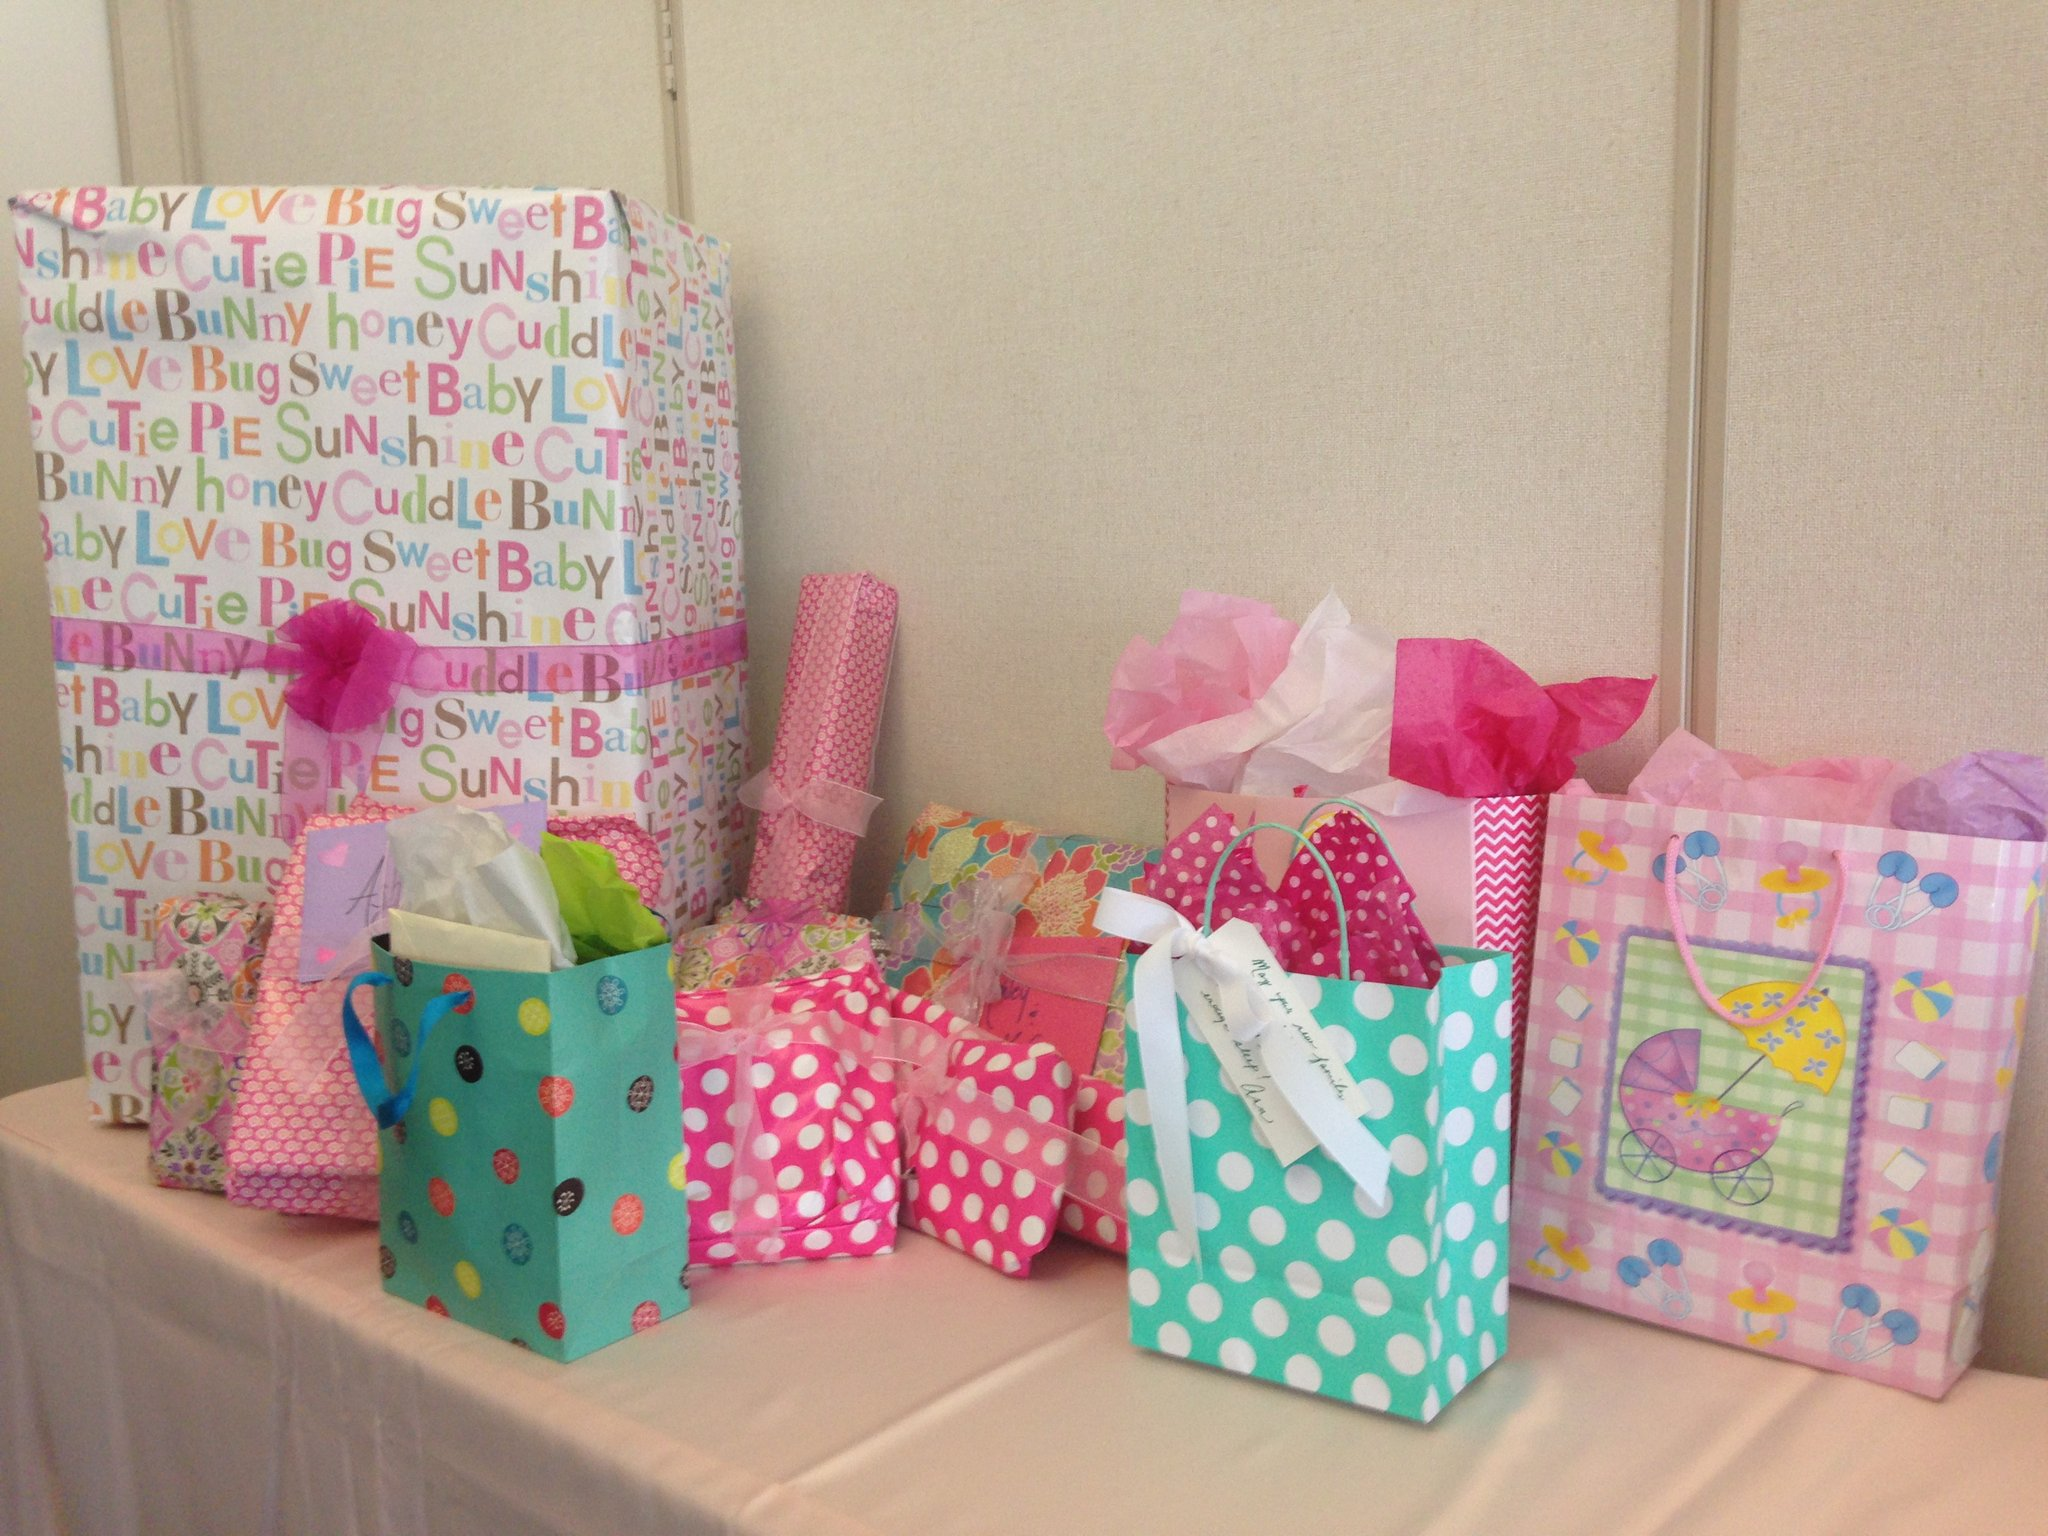 Top Five Present Ideas for a Baby Shower